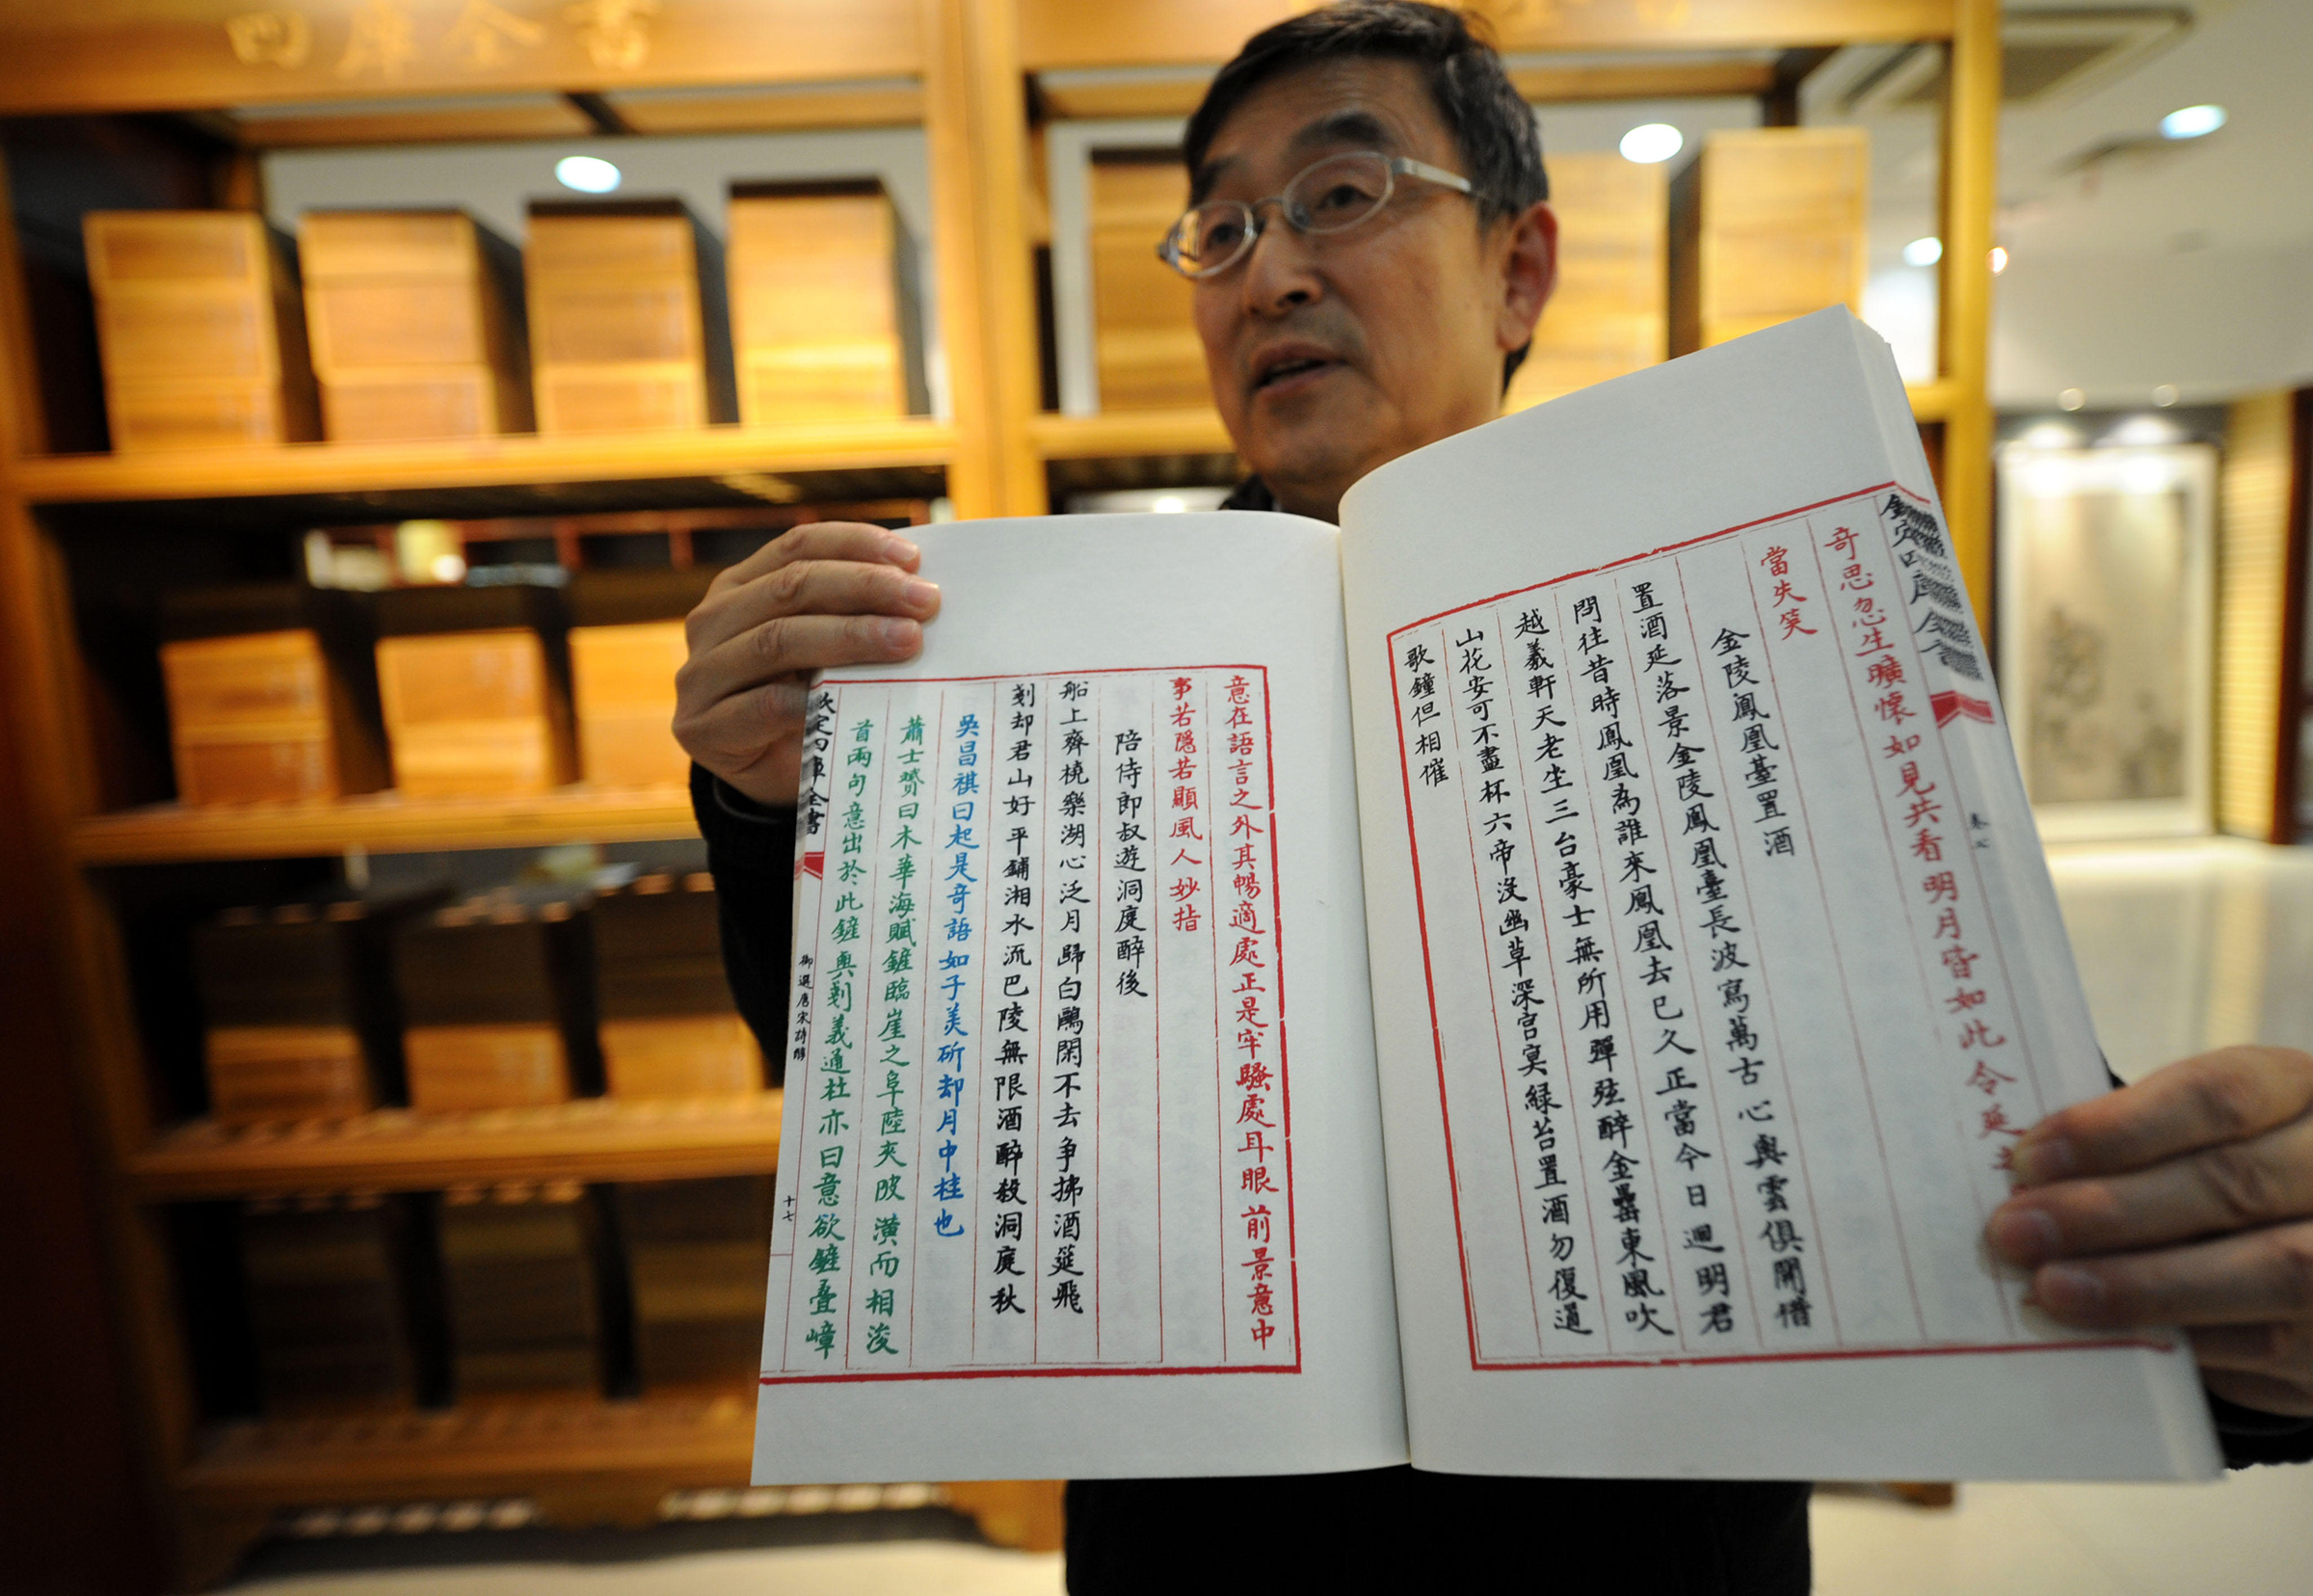 Lu Guobin, manager of Yangzhou Bindings, shows the duplicate of a classic Chinese book, the  Siku Quanshu,  or the  Complete Library in the Four Branches of Literature,  in Yangzhou on April 17, 2014.